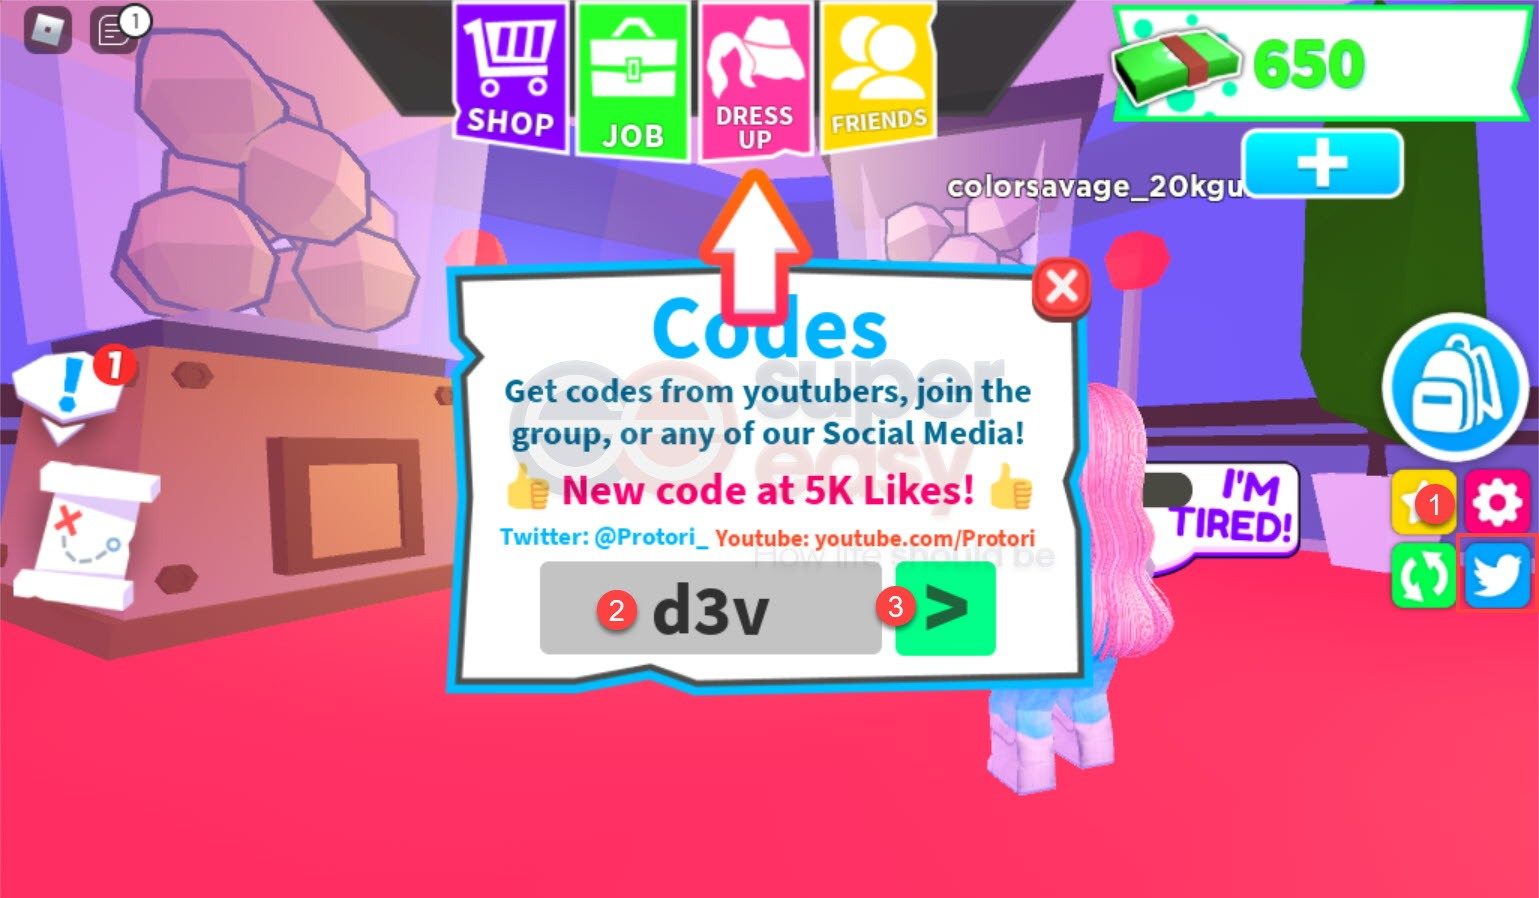 How to redeem Baby City codes